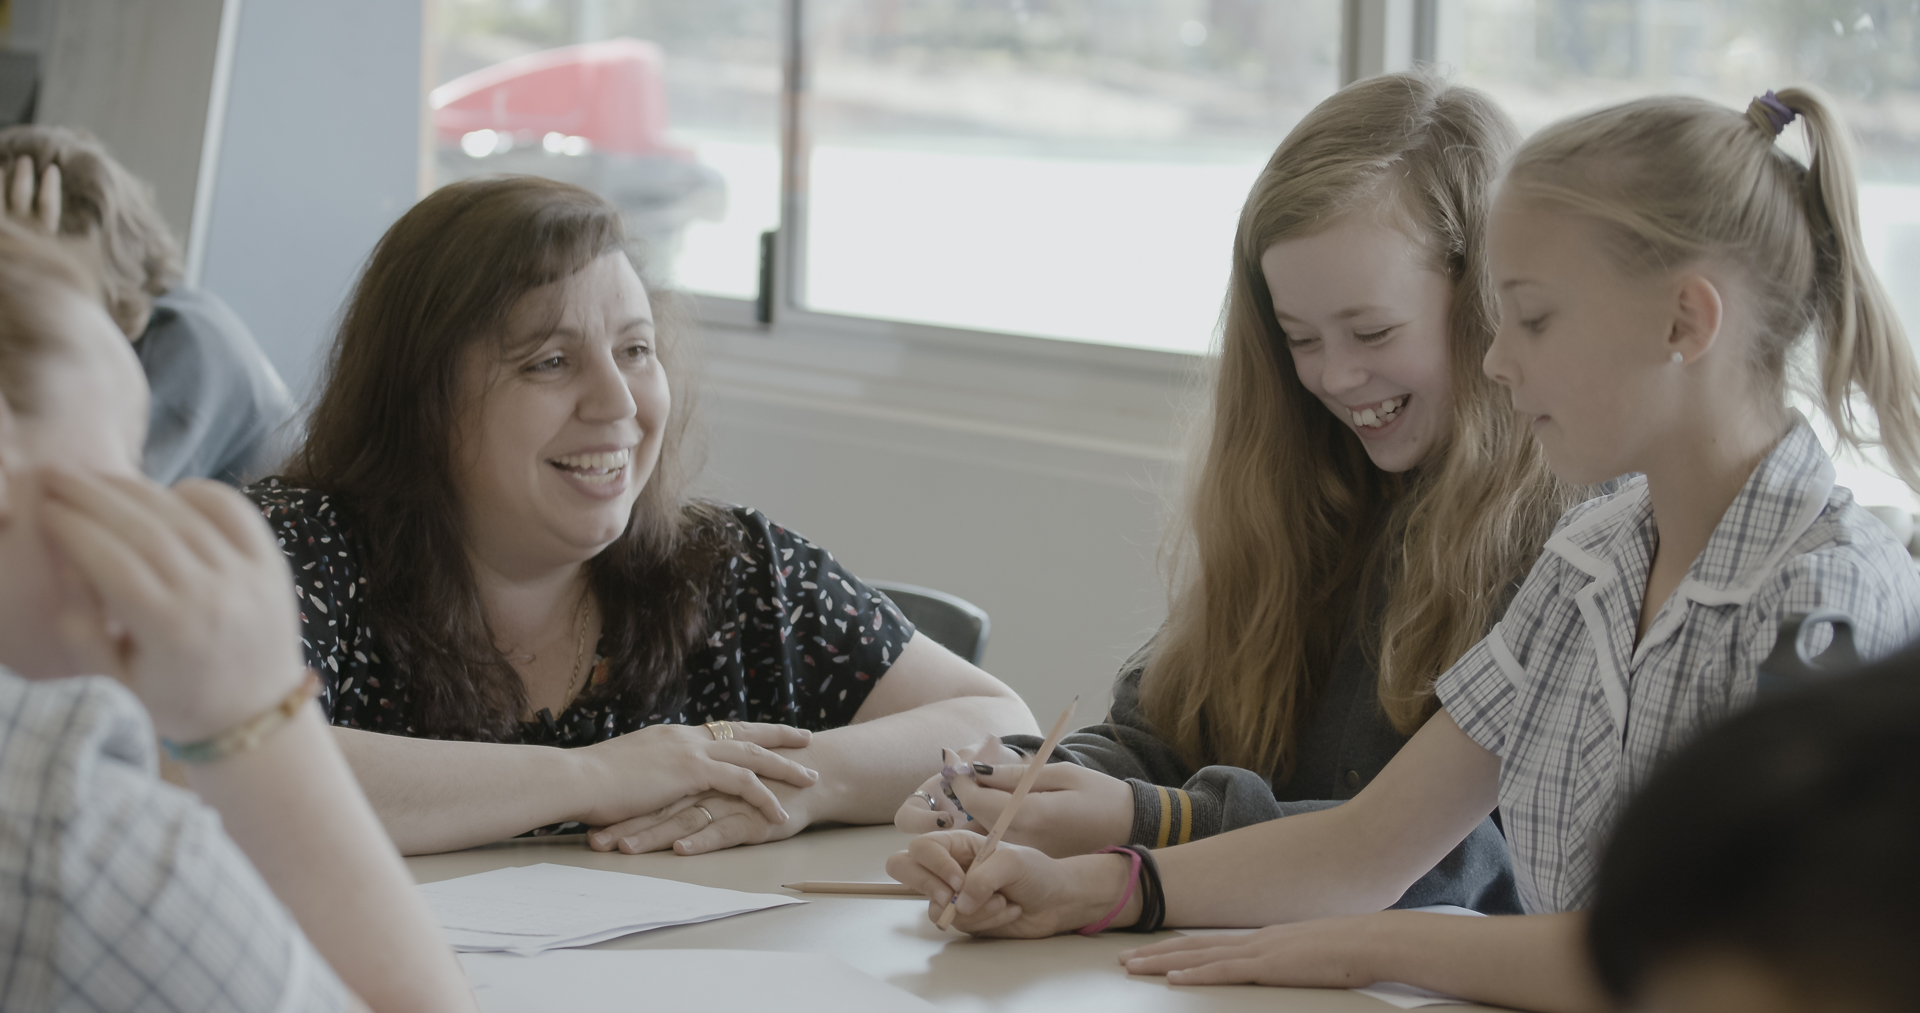 Two girls sit working at a table with a female teacher at their eye level, smiling at them with a big grin as they work. One of the students is also smiling wide.